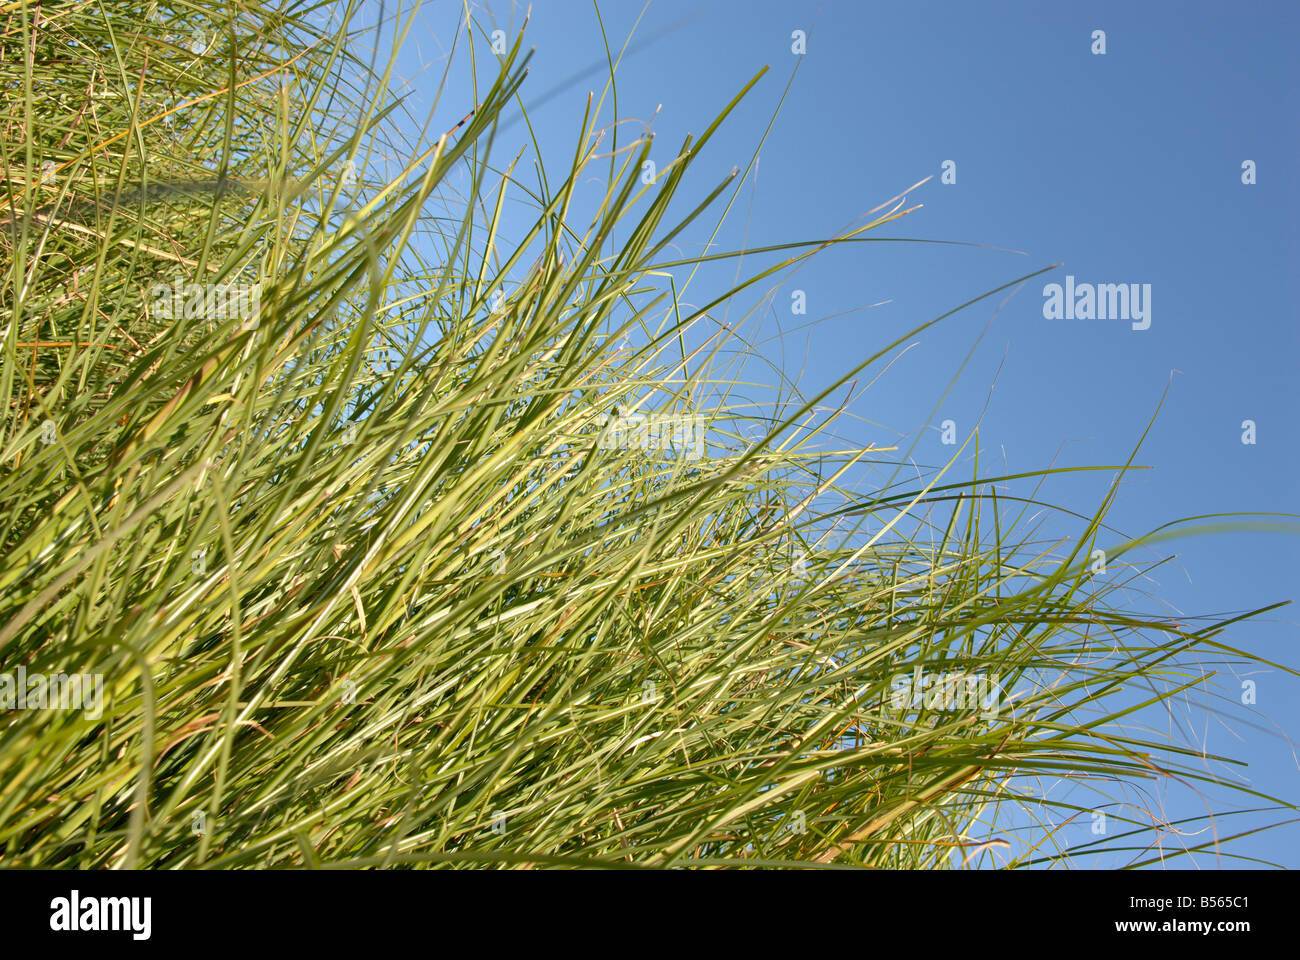 GRASS OUT OF CONTROL - Stock Image